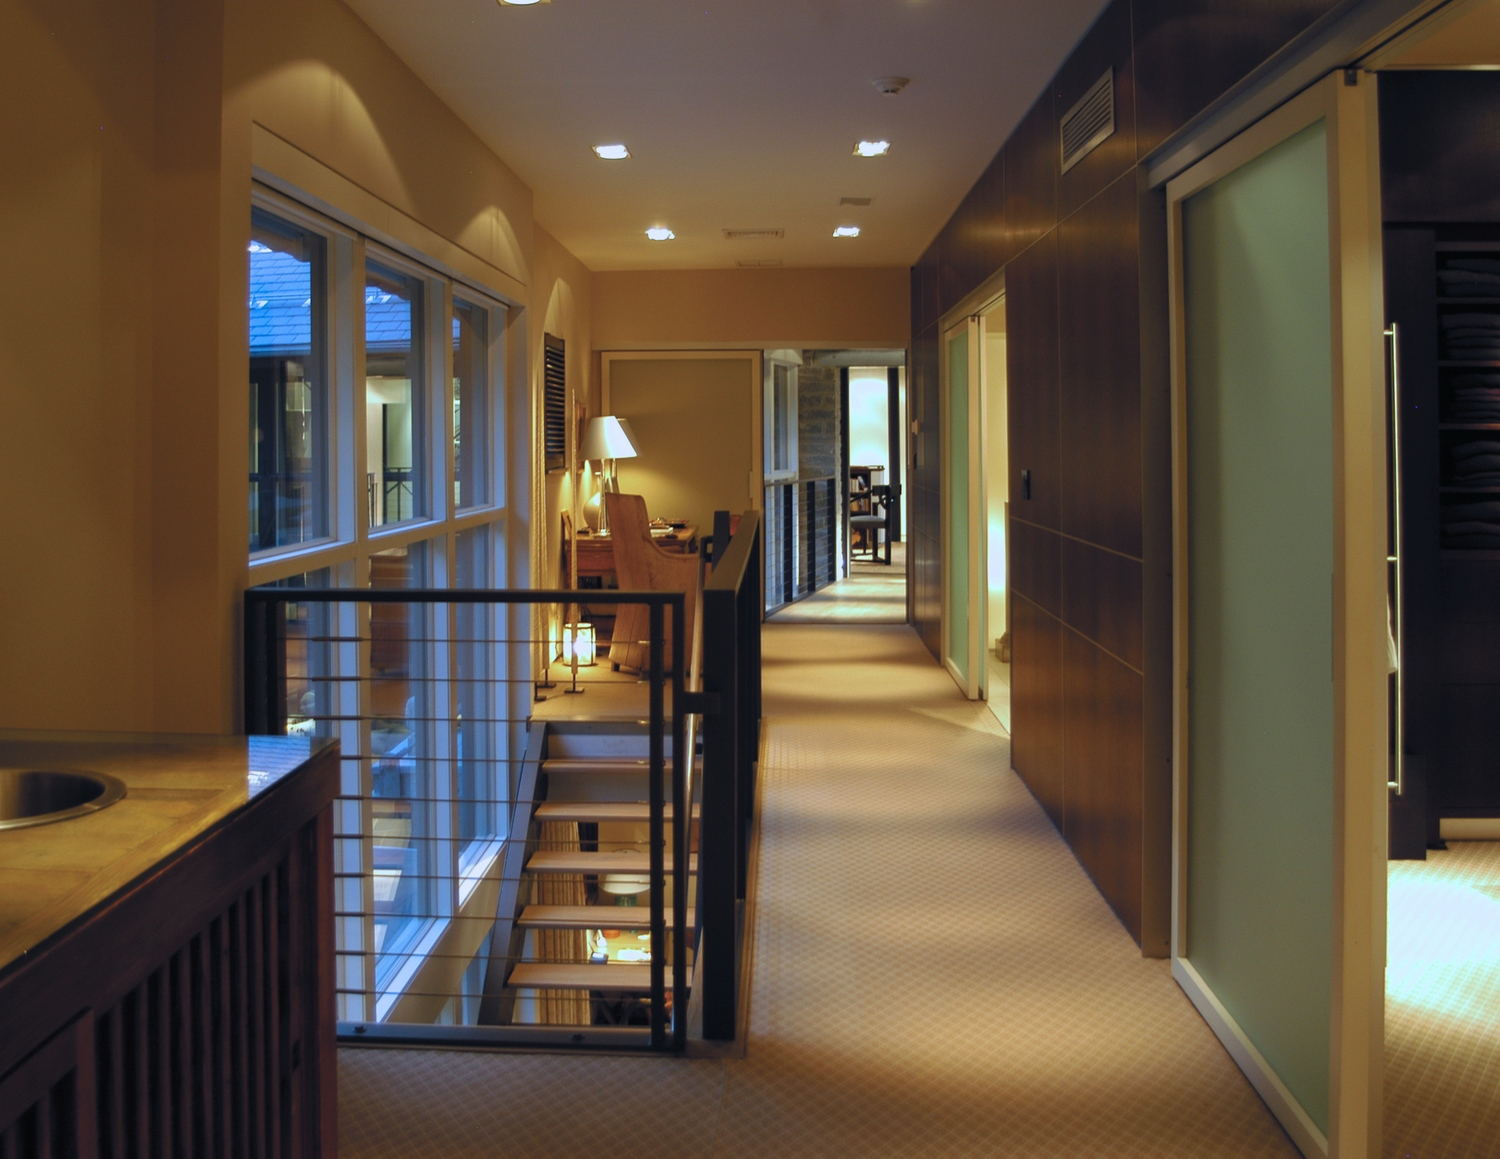 Residential Architecture - Allentown, PA — R+D ARCHITECTURE - Lehigh ...